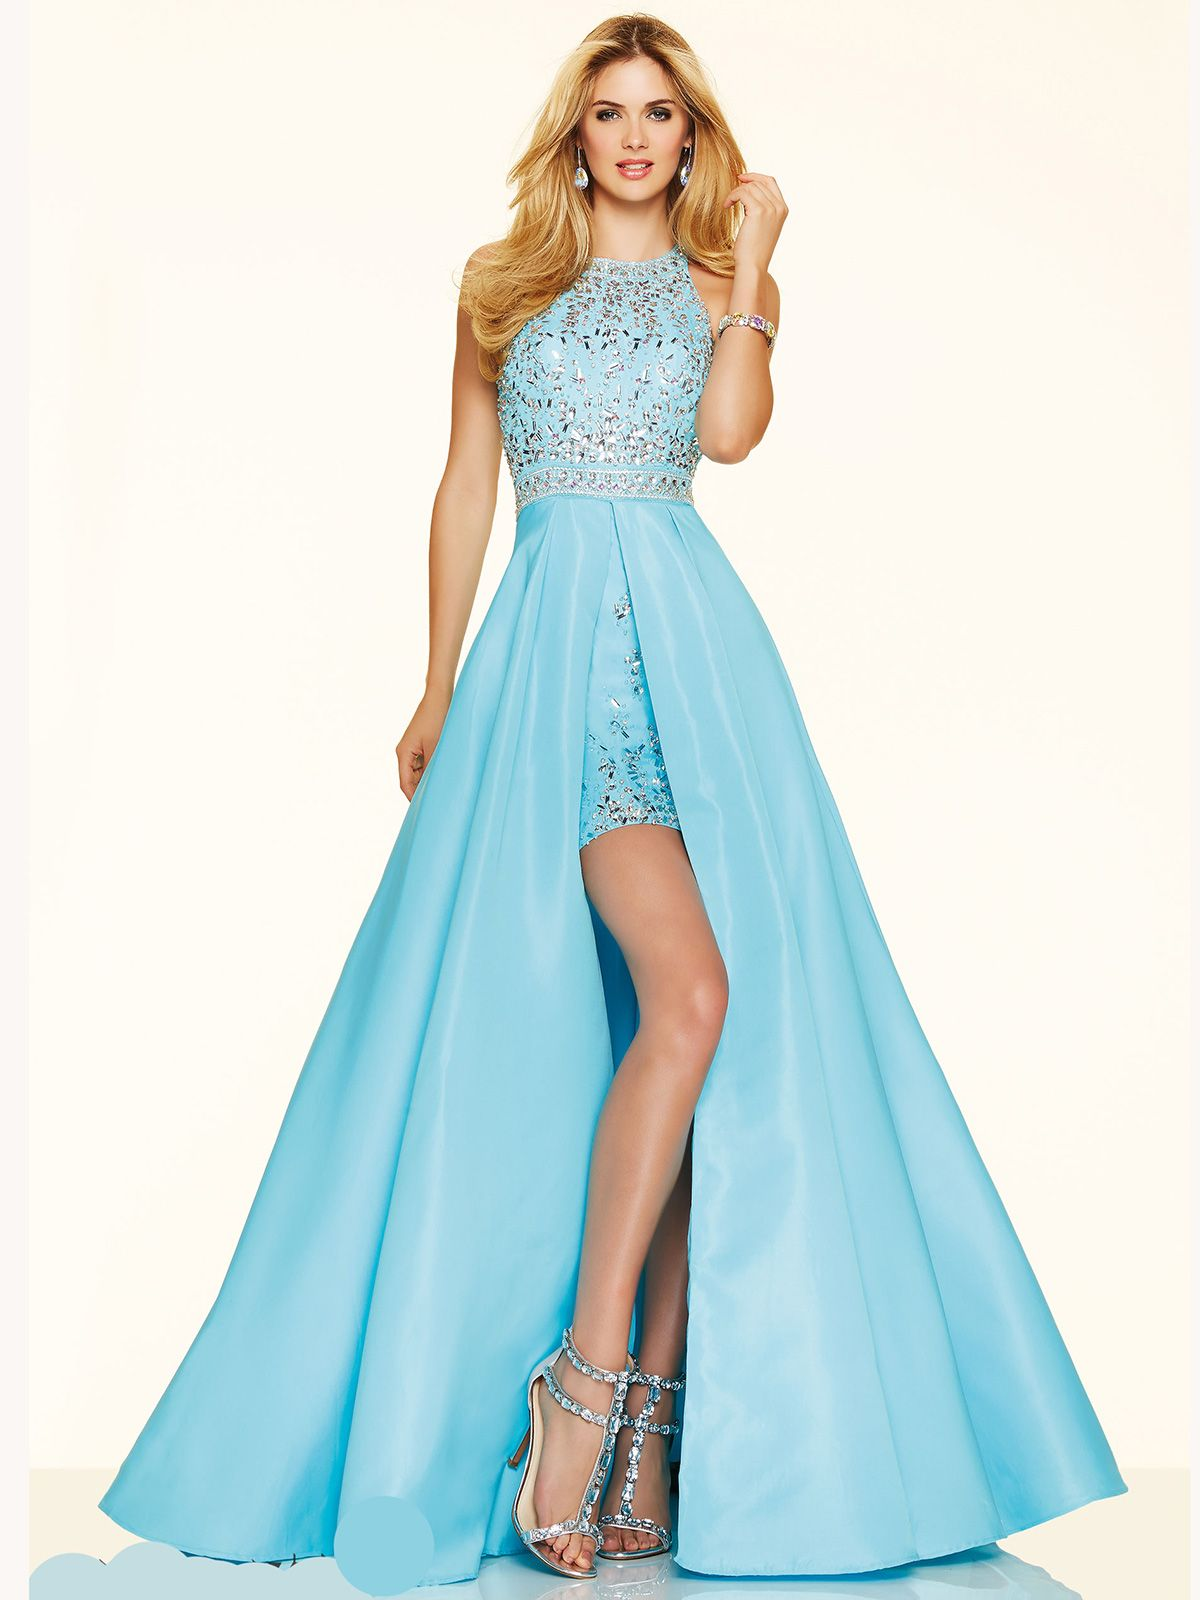 Make your prom dream come true wearing this beautiful prom dress ...